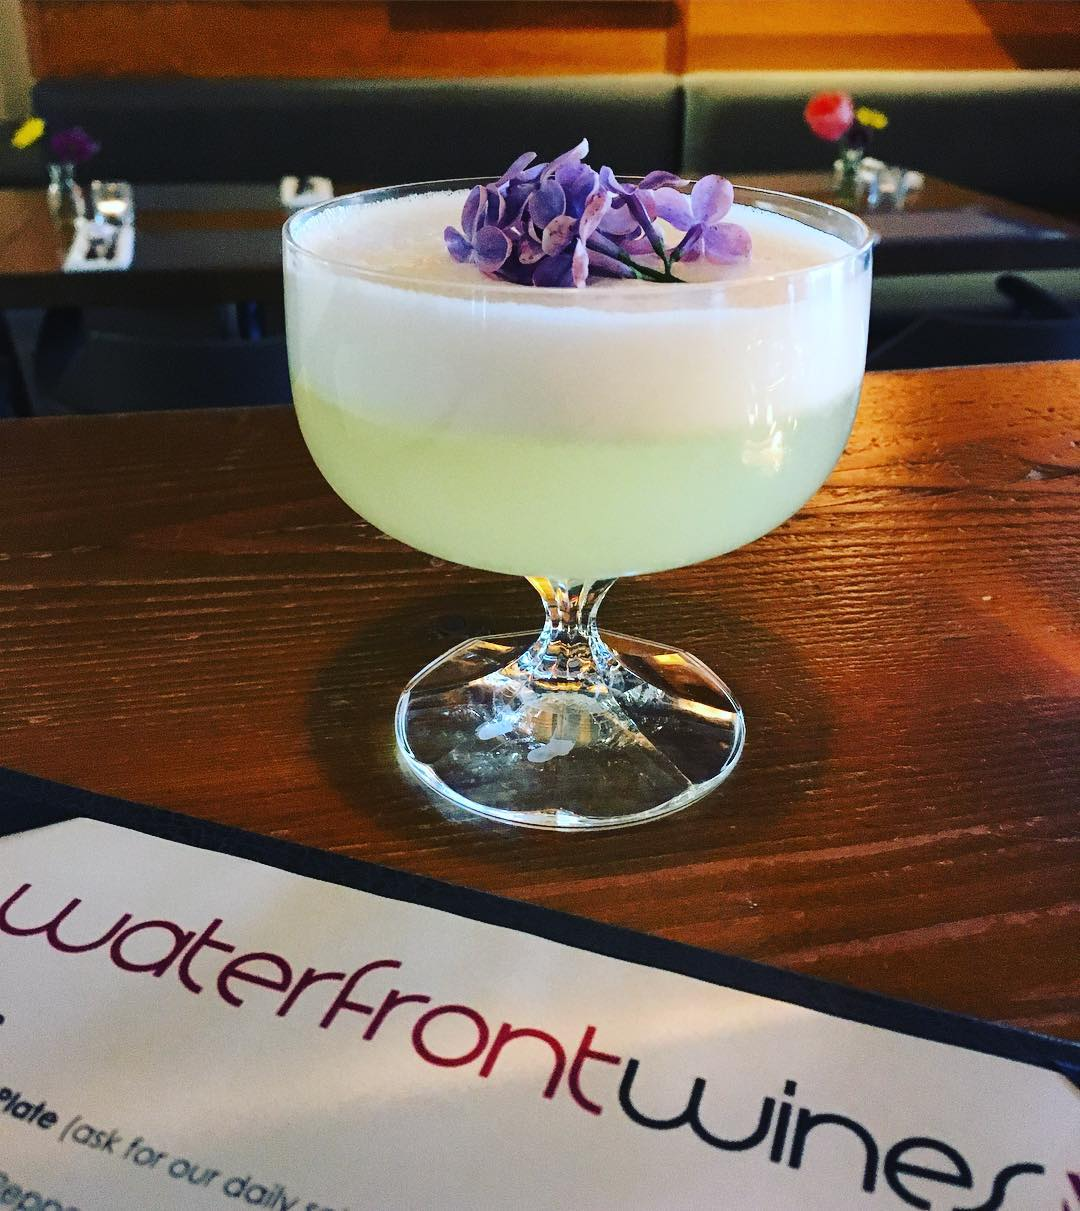 Cocktail feature okanaganspirits gin lilac sour waterfrontwines ginforthewin supportlocal drinkallthethings